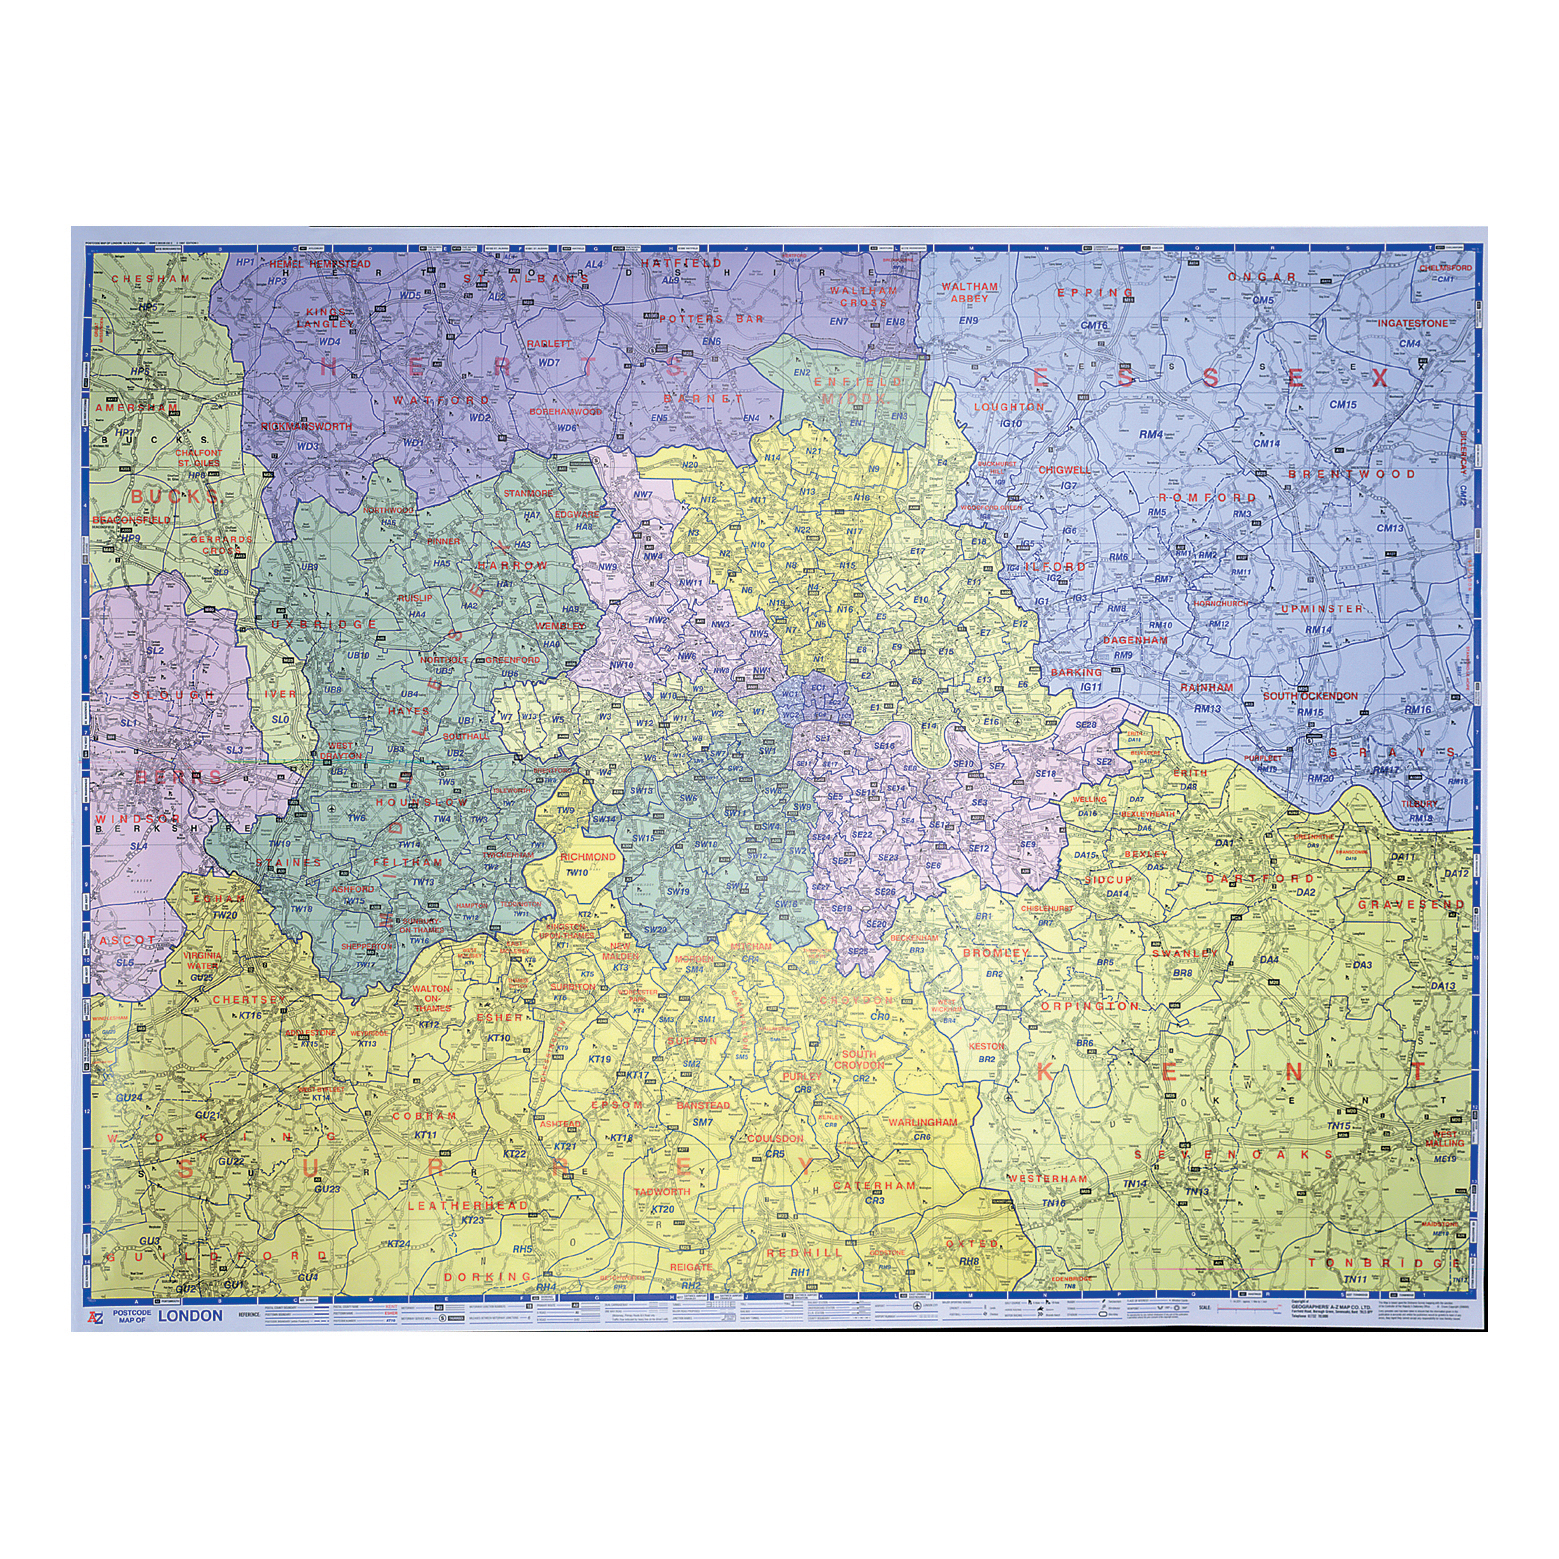 Image for Map Marketing Postal Districts of London Map Unframed 1 Mile to 1 inch Scale W1180xH930mm Ref GLPC